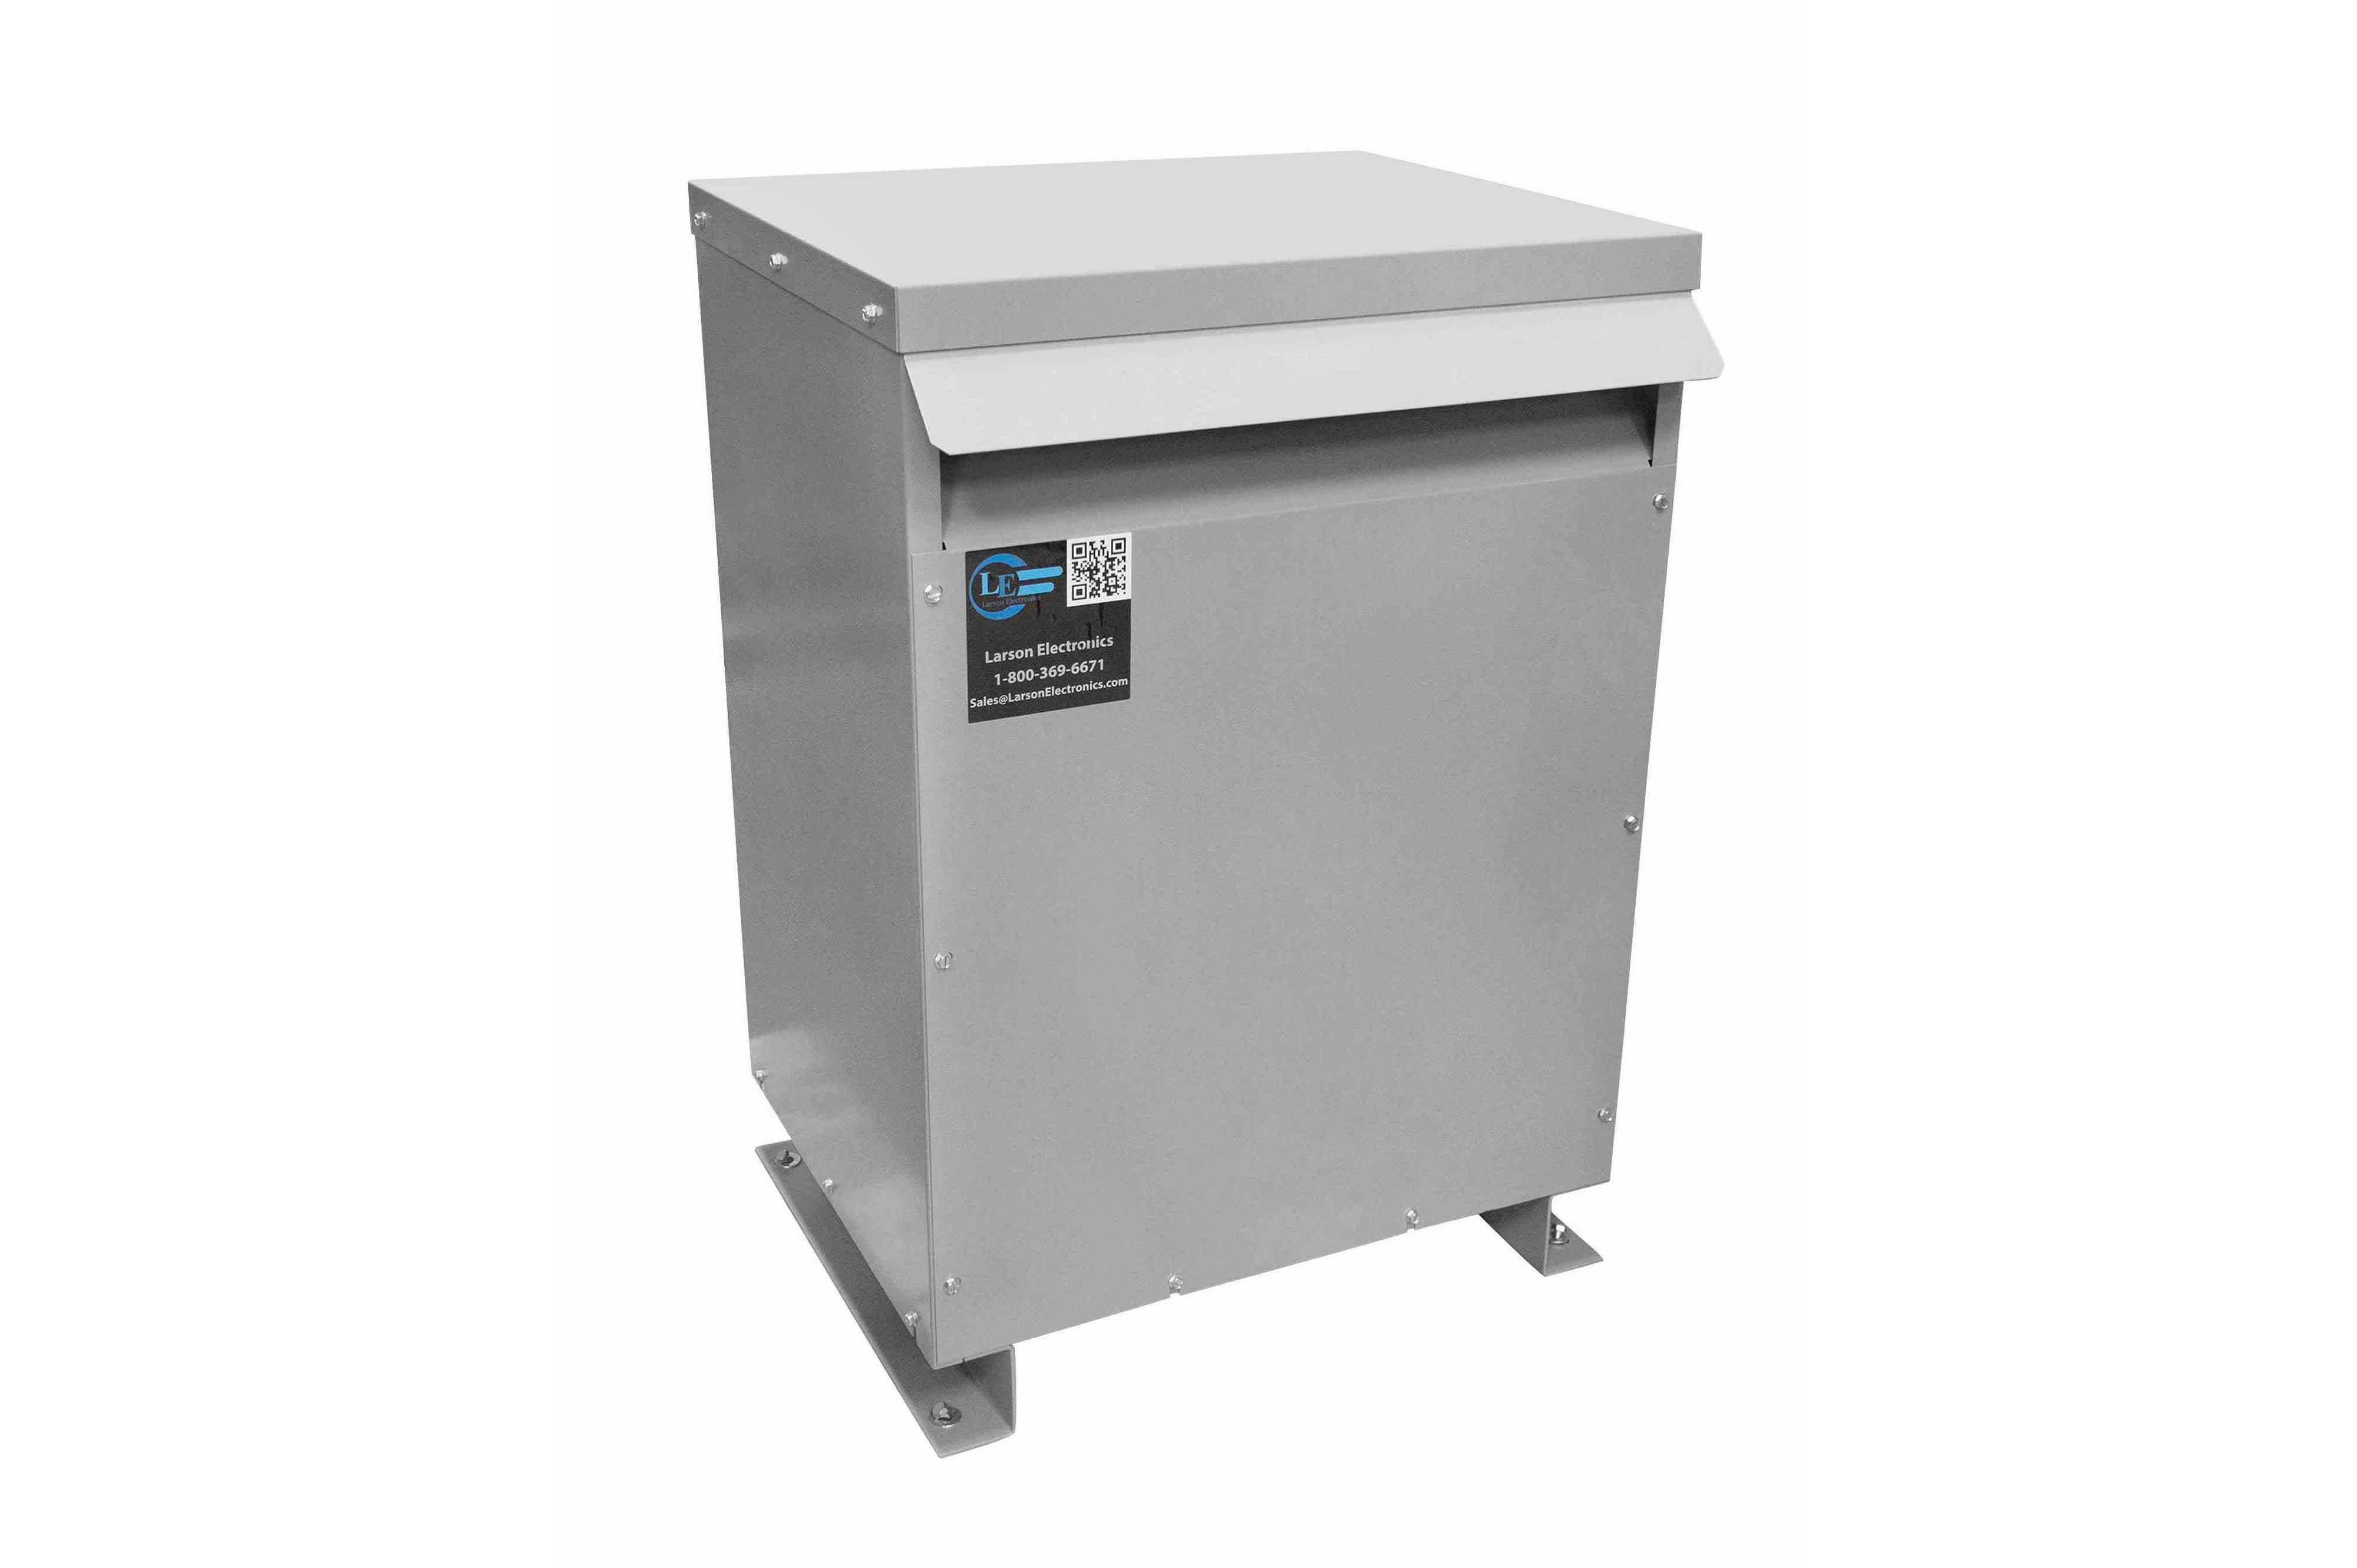 18 kVA 3PH Isolation Transformer, 380V Delta Primary, 600V Delta Secondary, N3R, Ventilated, 60 Hz